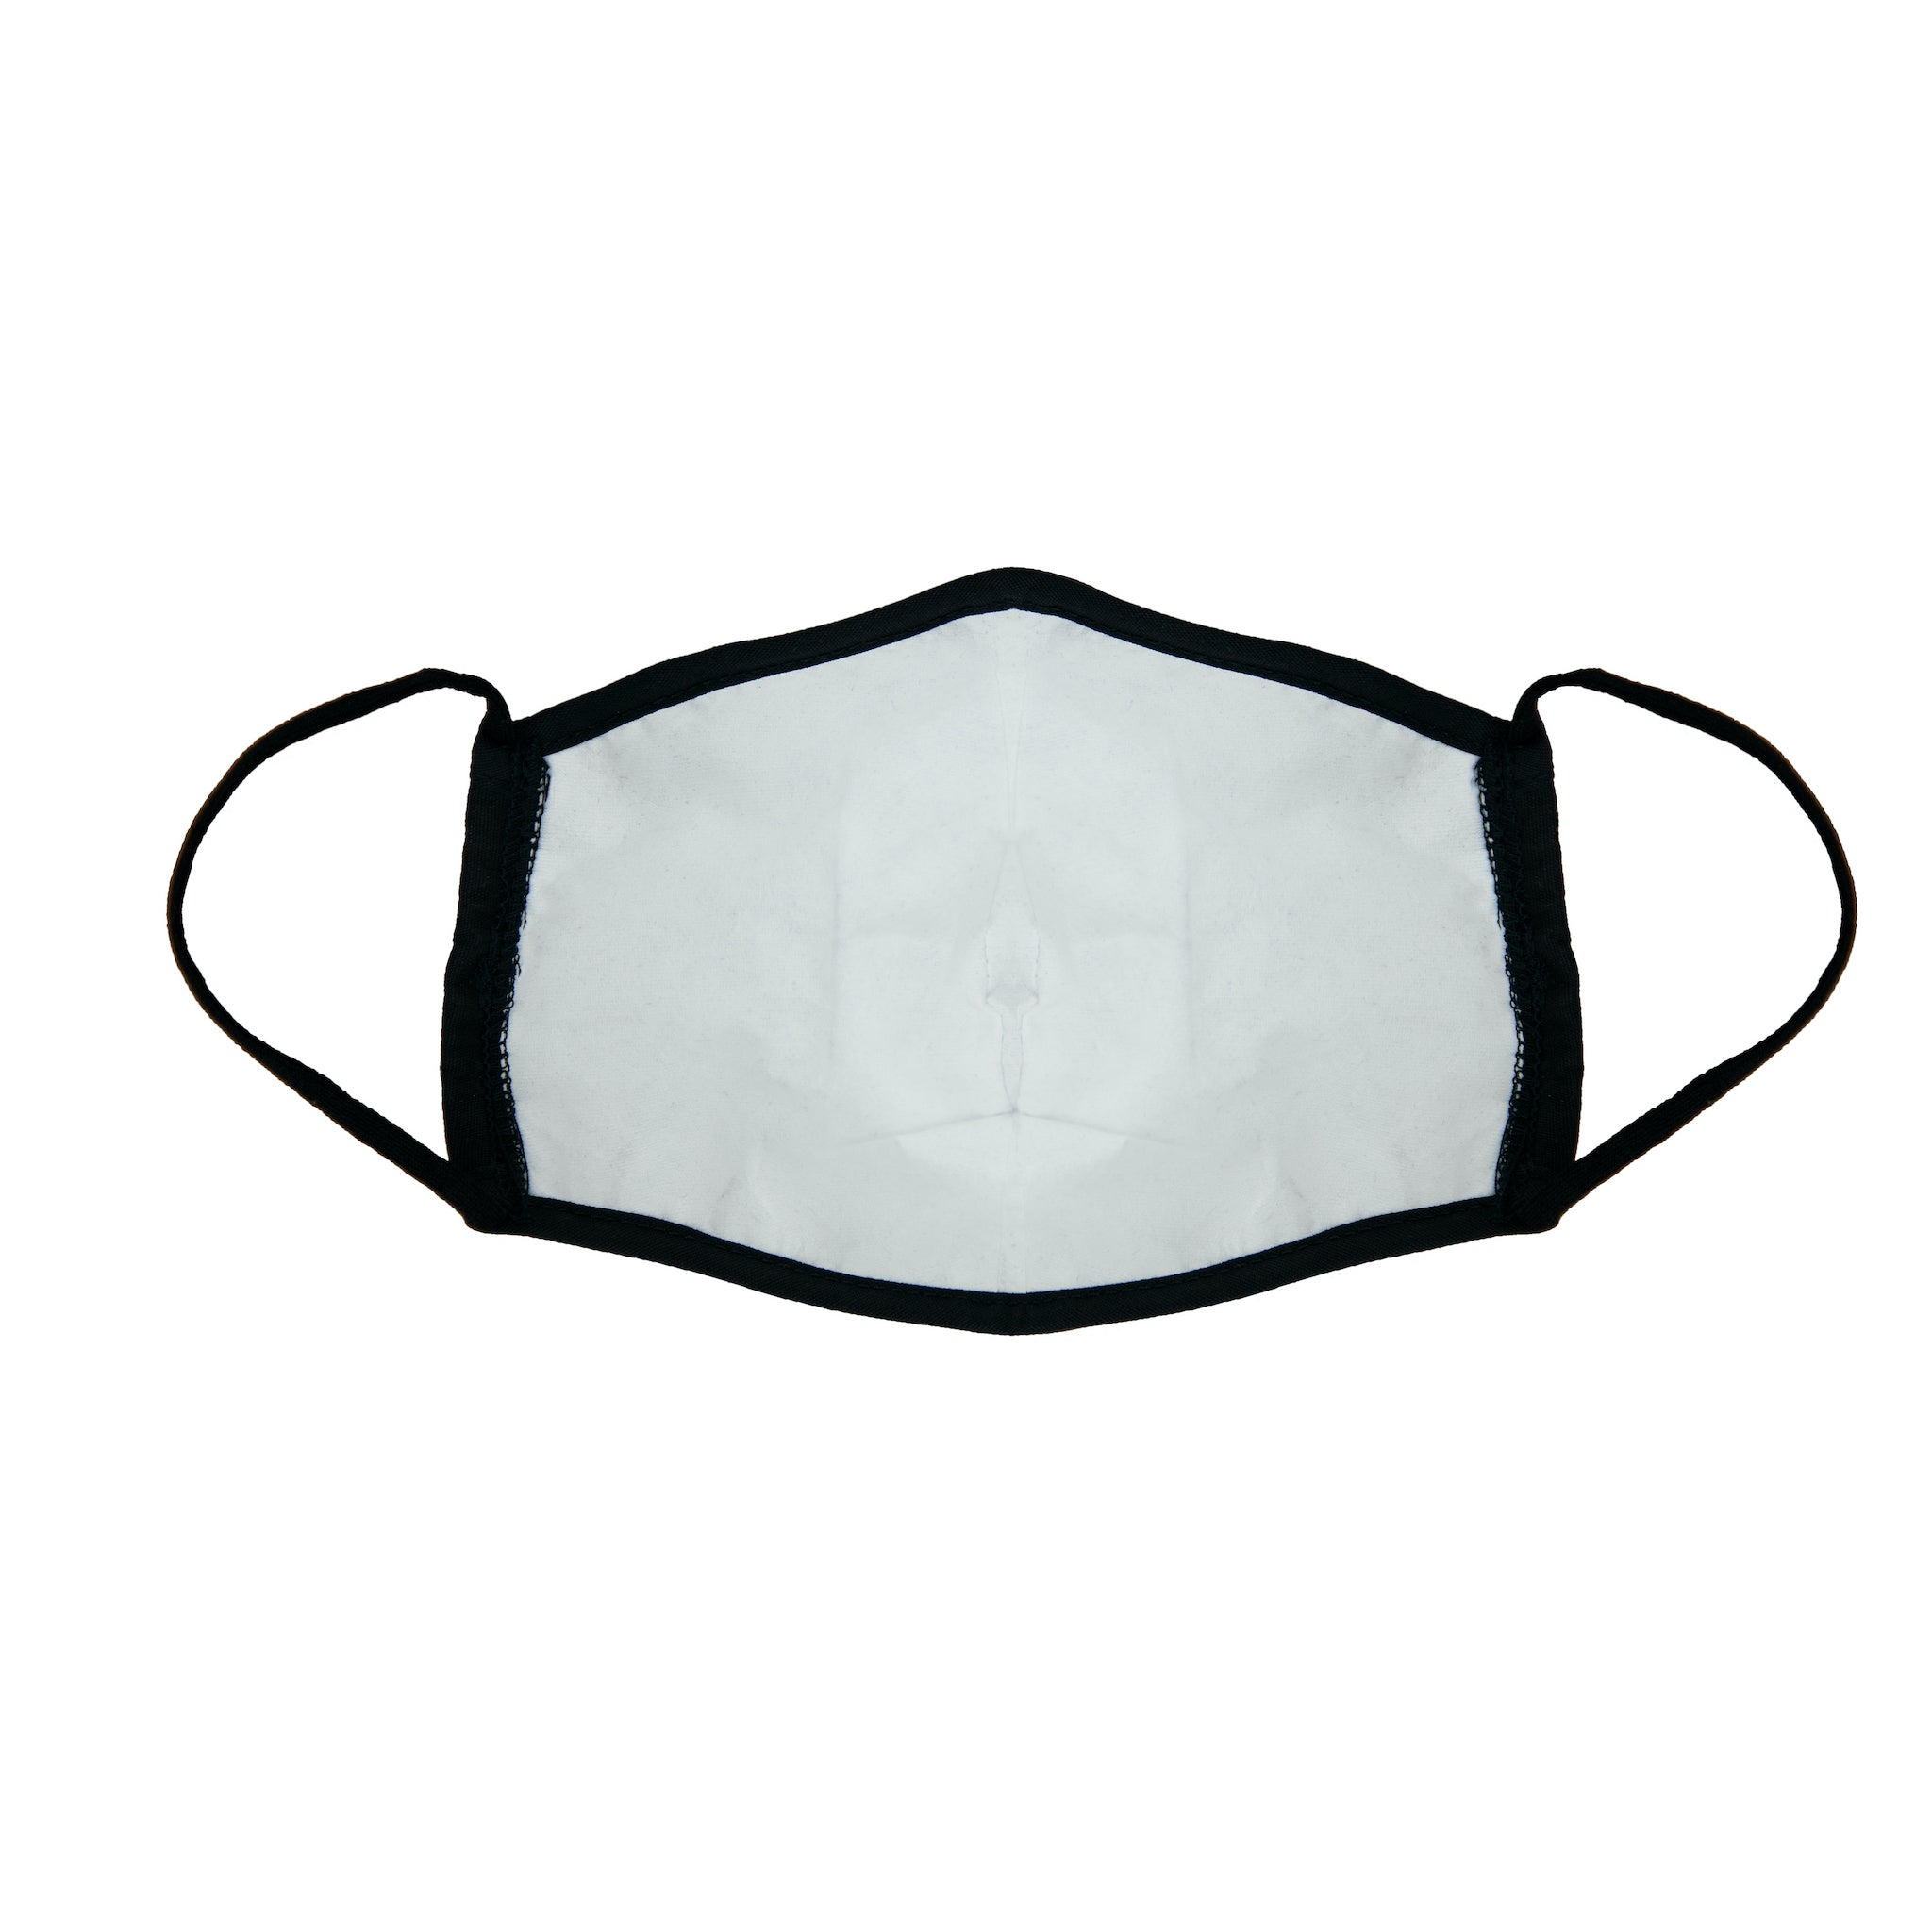 Wrapture Masks Black Face Mask made of electrostatic non-woven polypropylene fiber